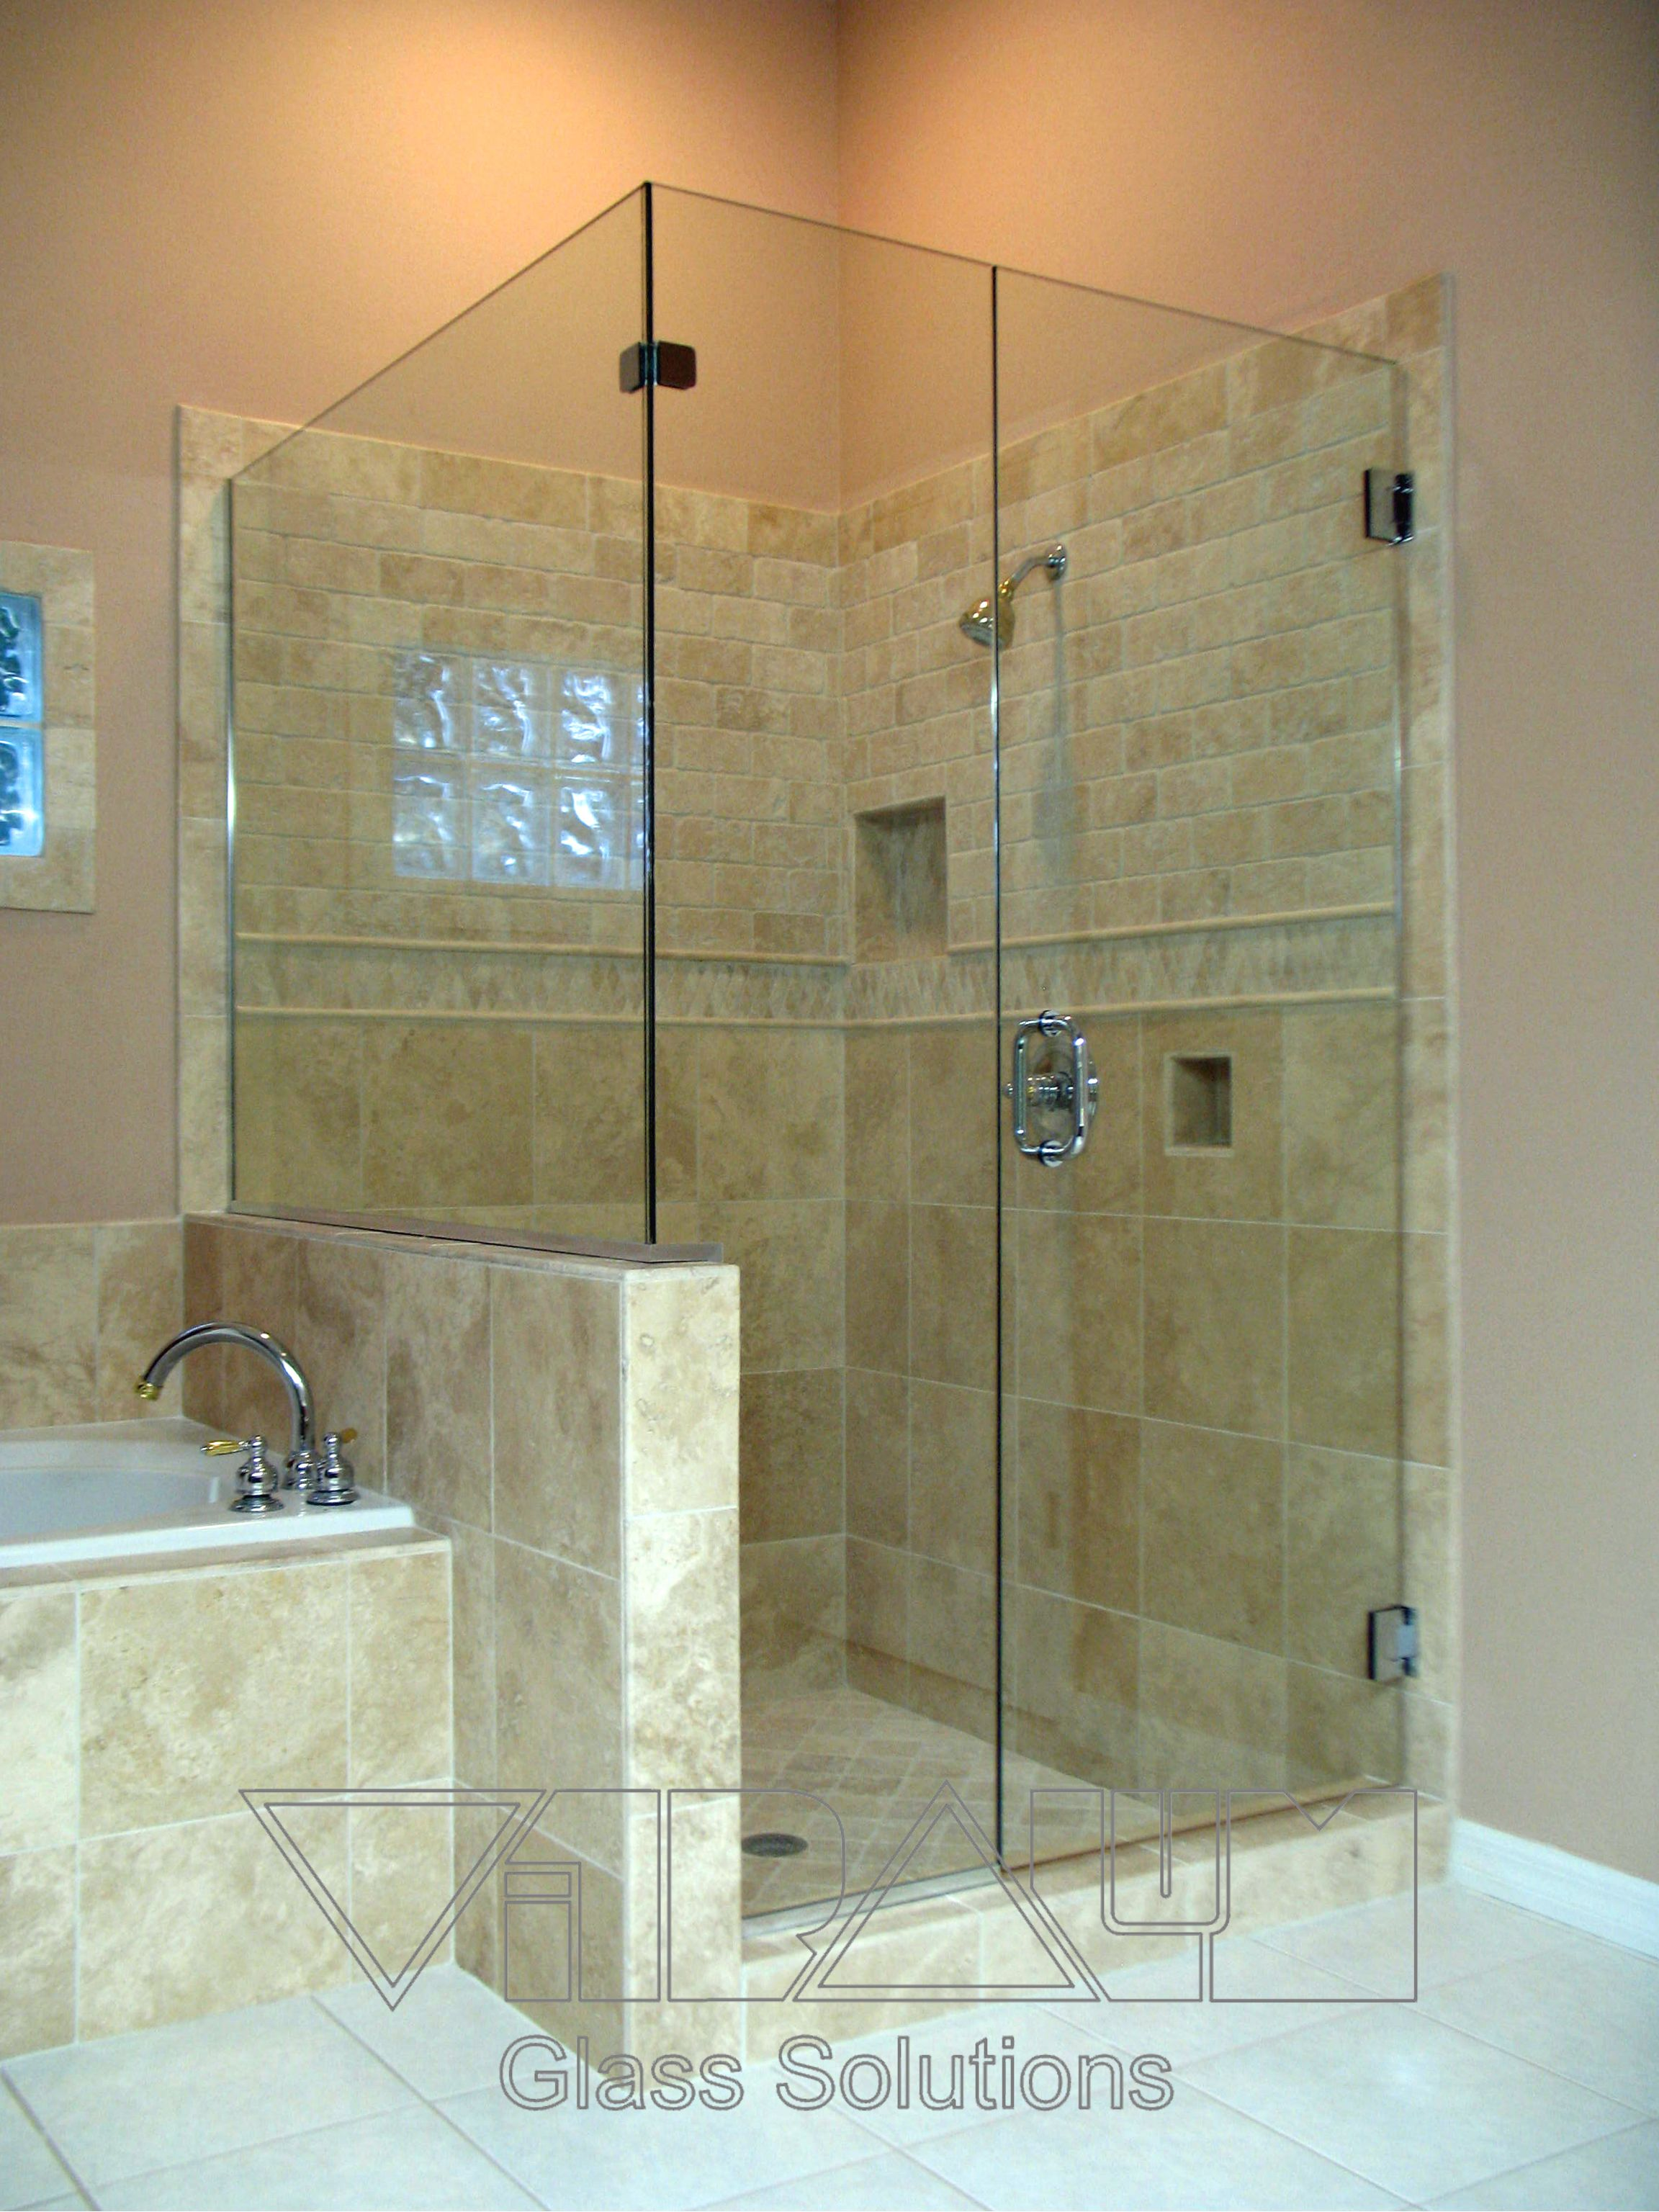 Pencil Rail Stops At Frameless Shower Can The Hinge Be Positioned